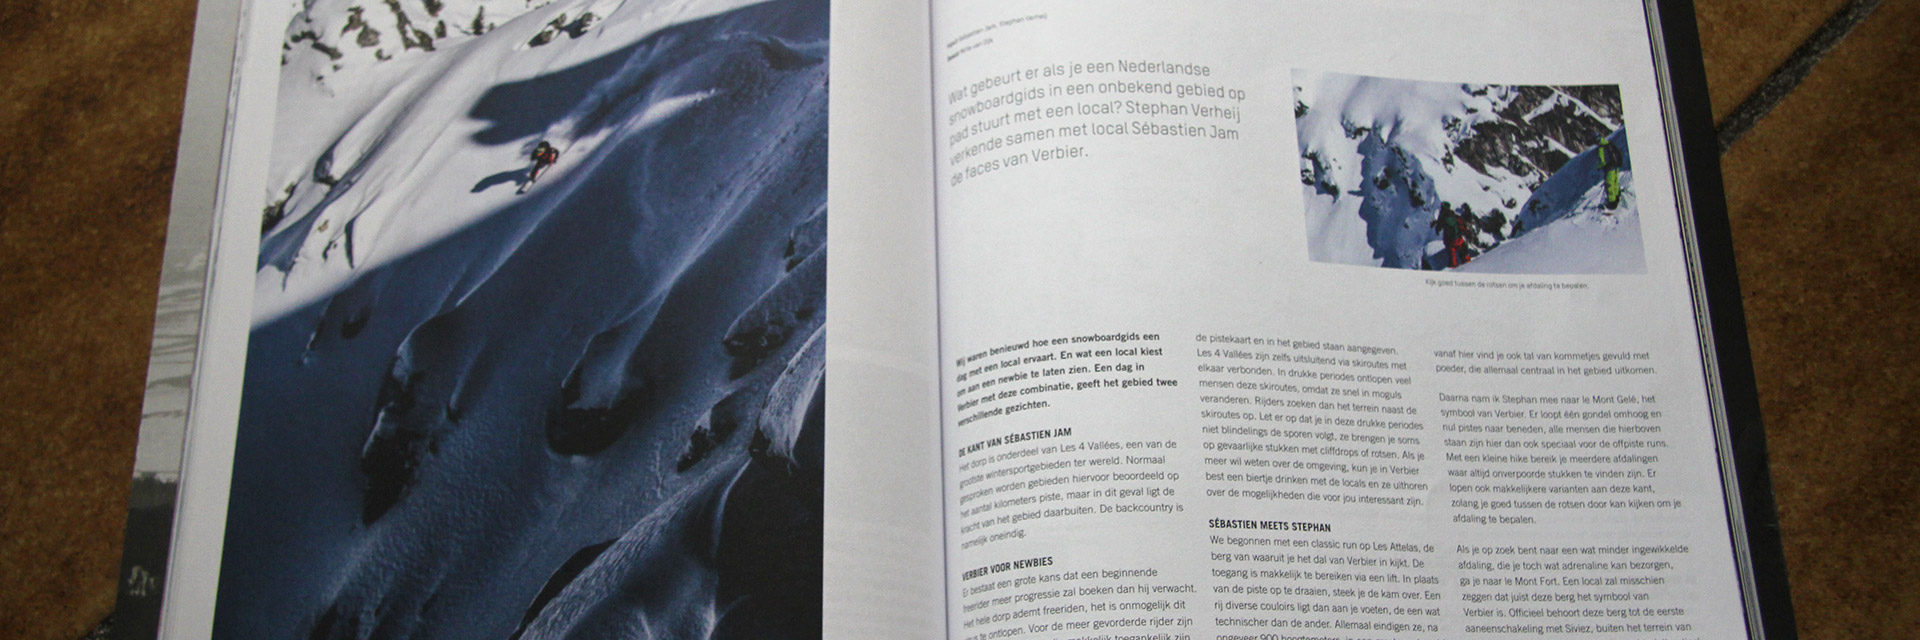 Two Faces article Taste Snowboard Magazine 2014-1